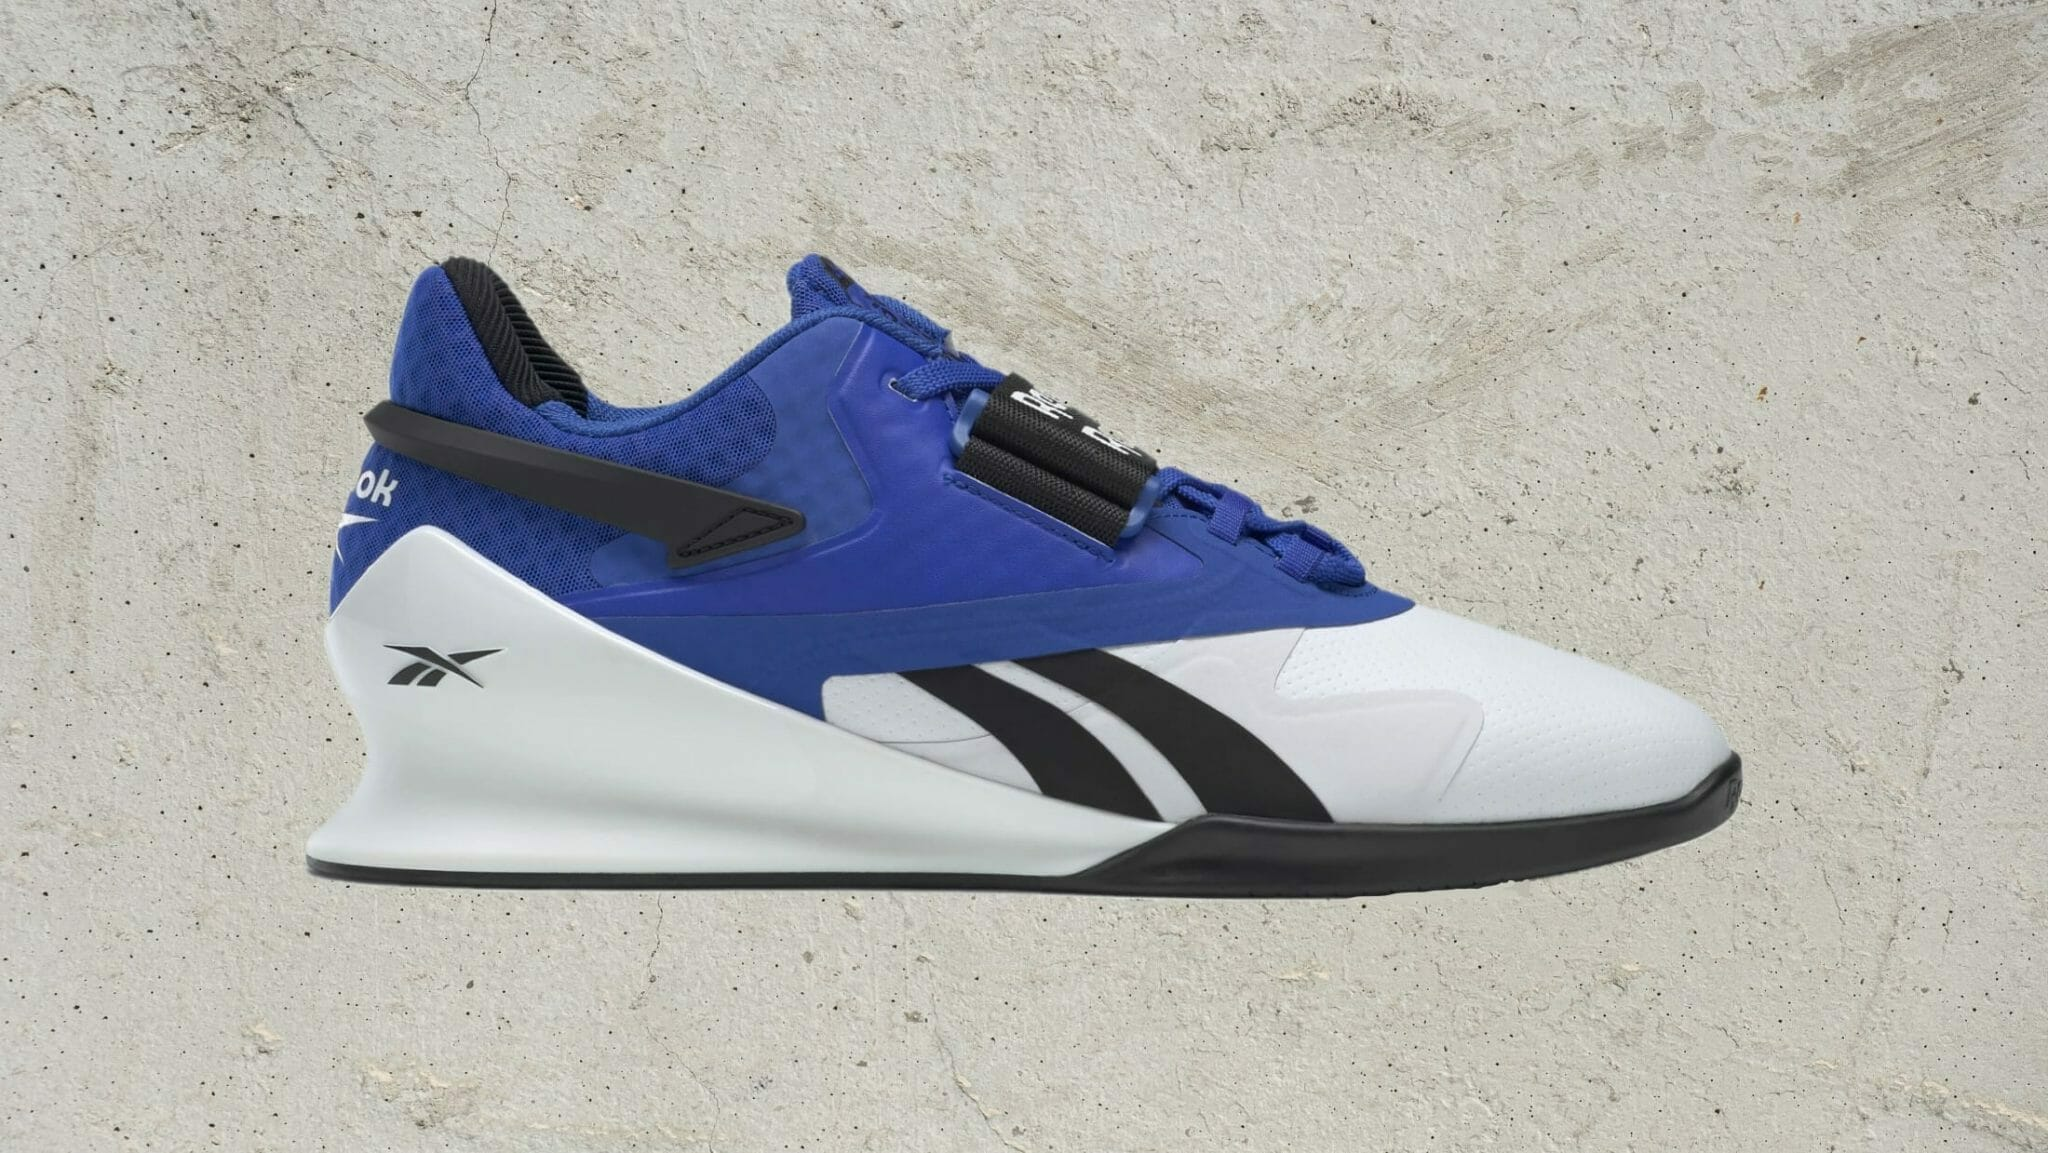 New colorway for the Reebok Legacy Lifter II.